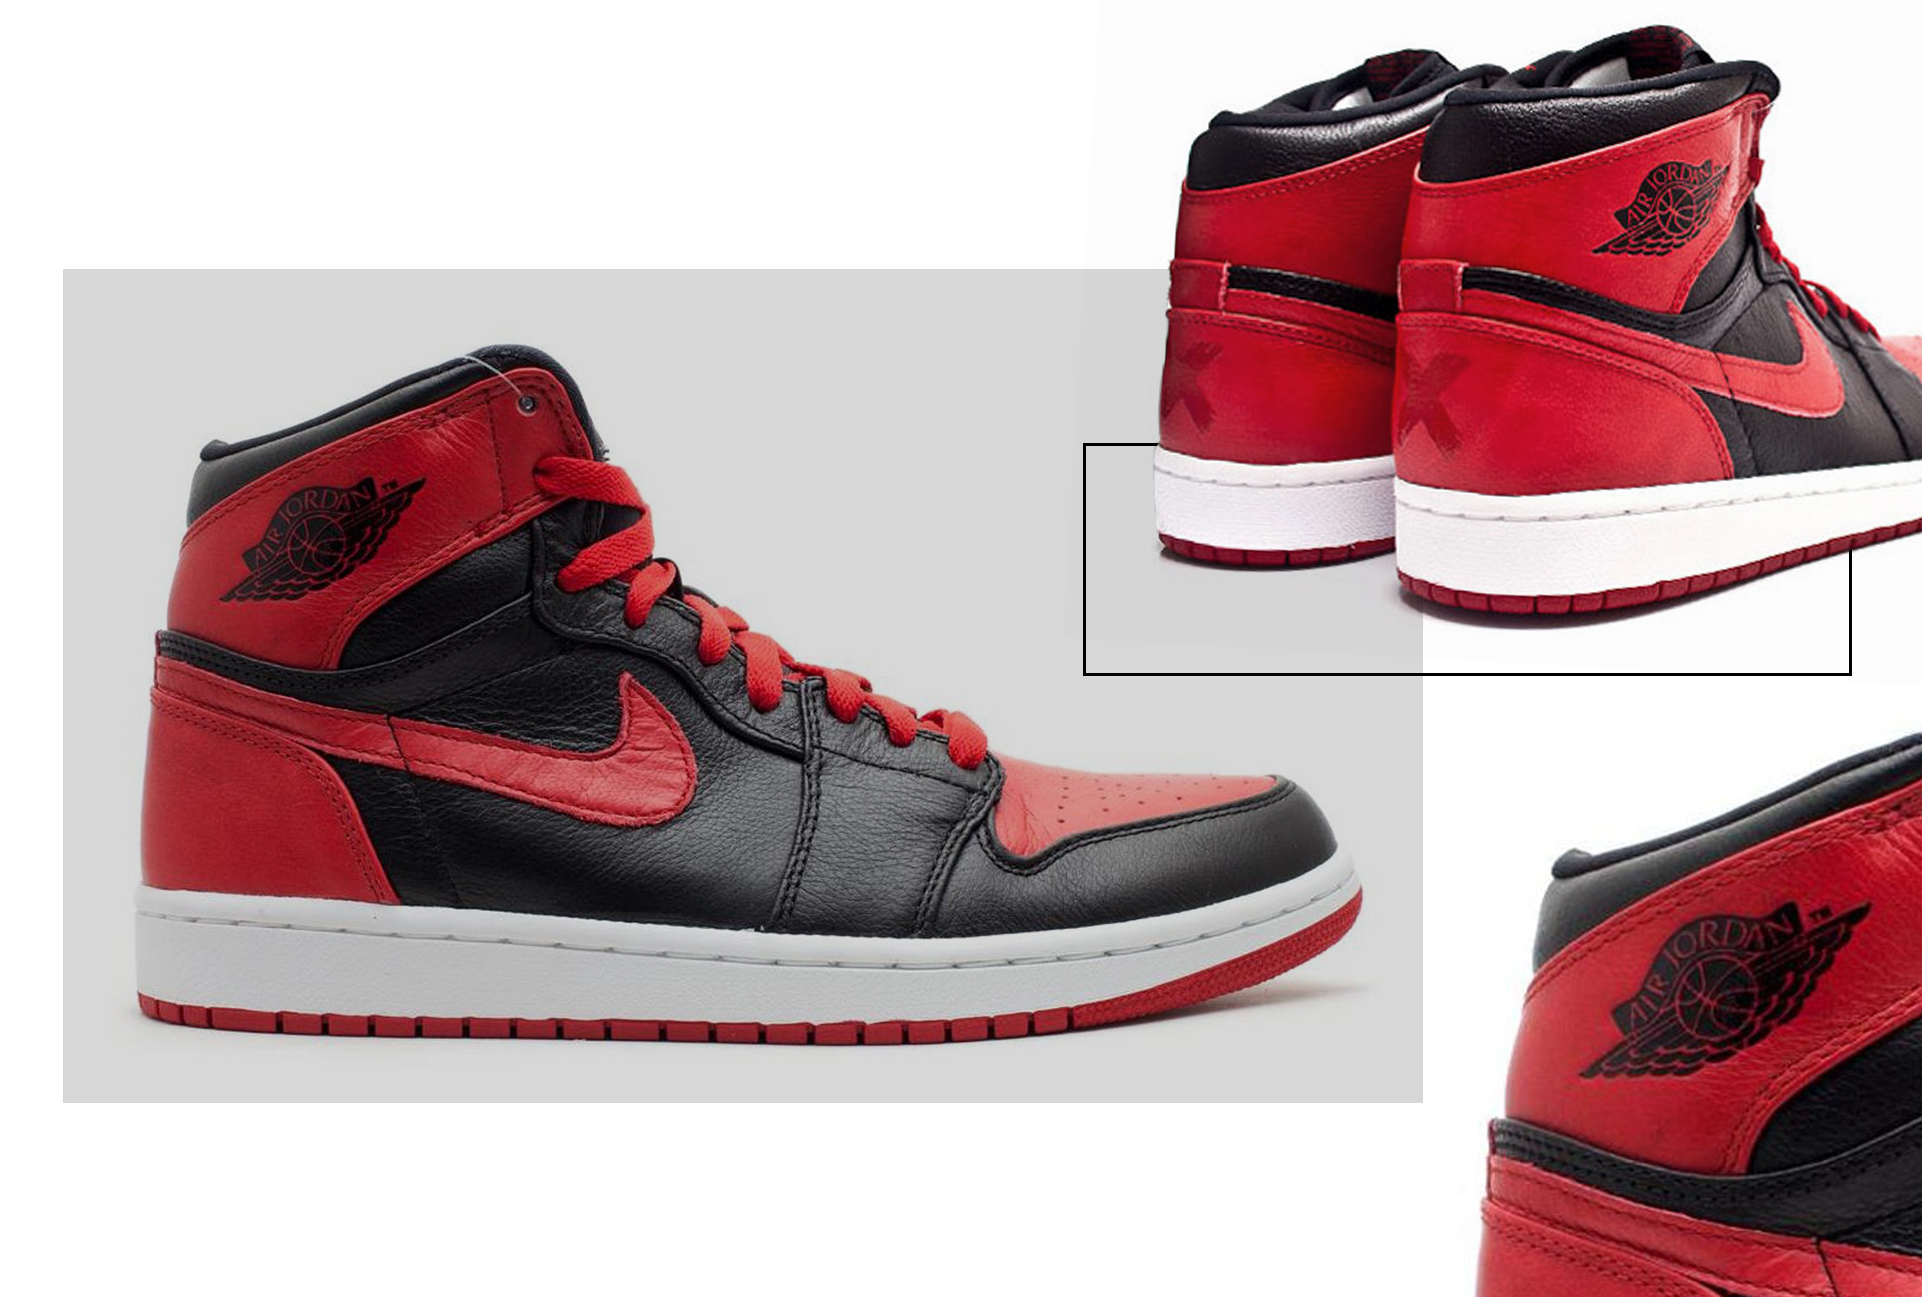 What Are Banned Jordans? Here's the